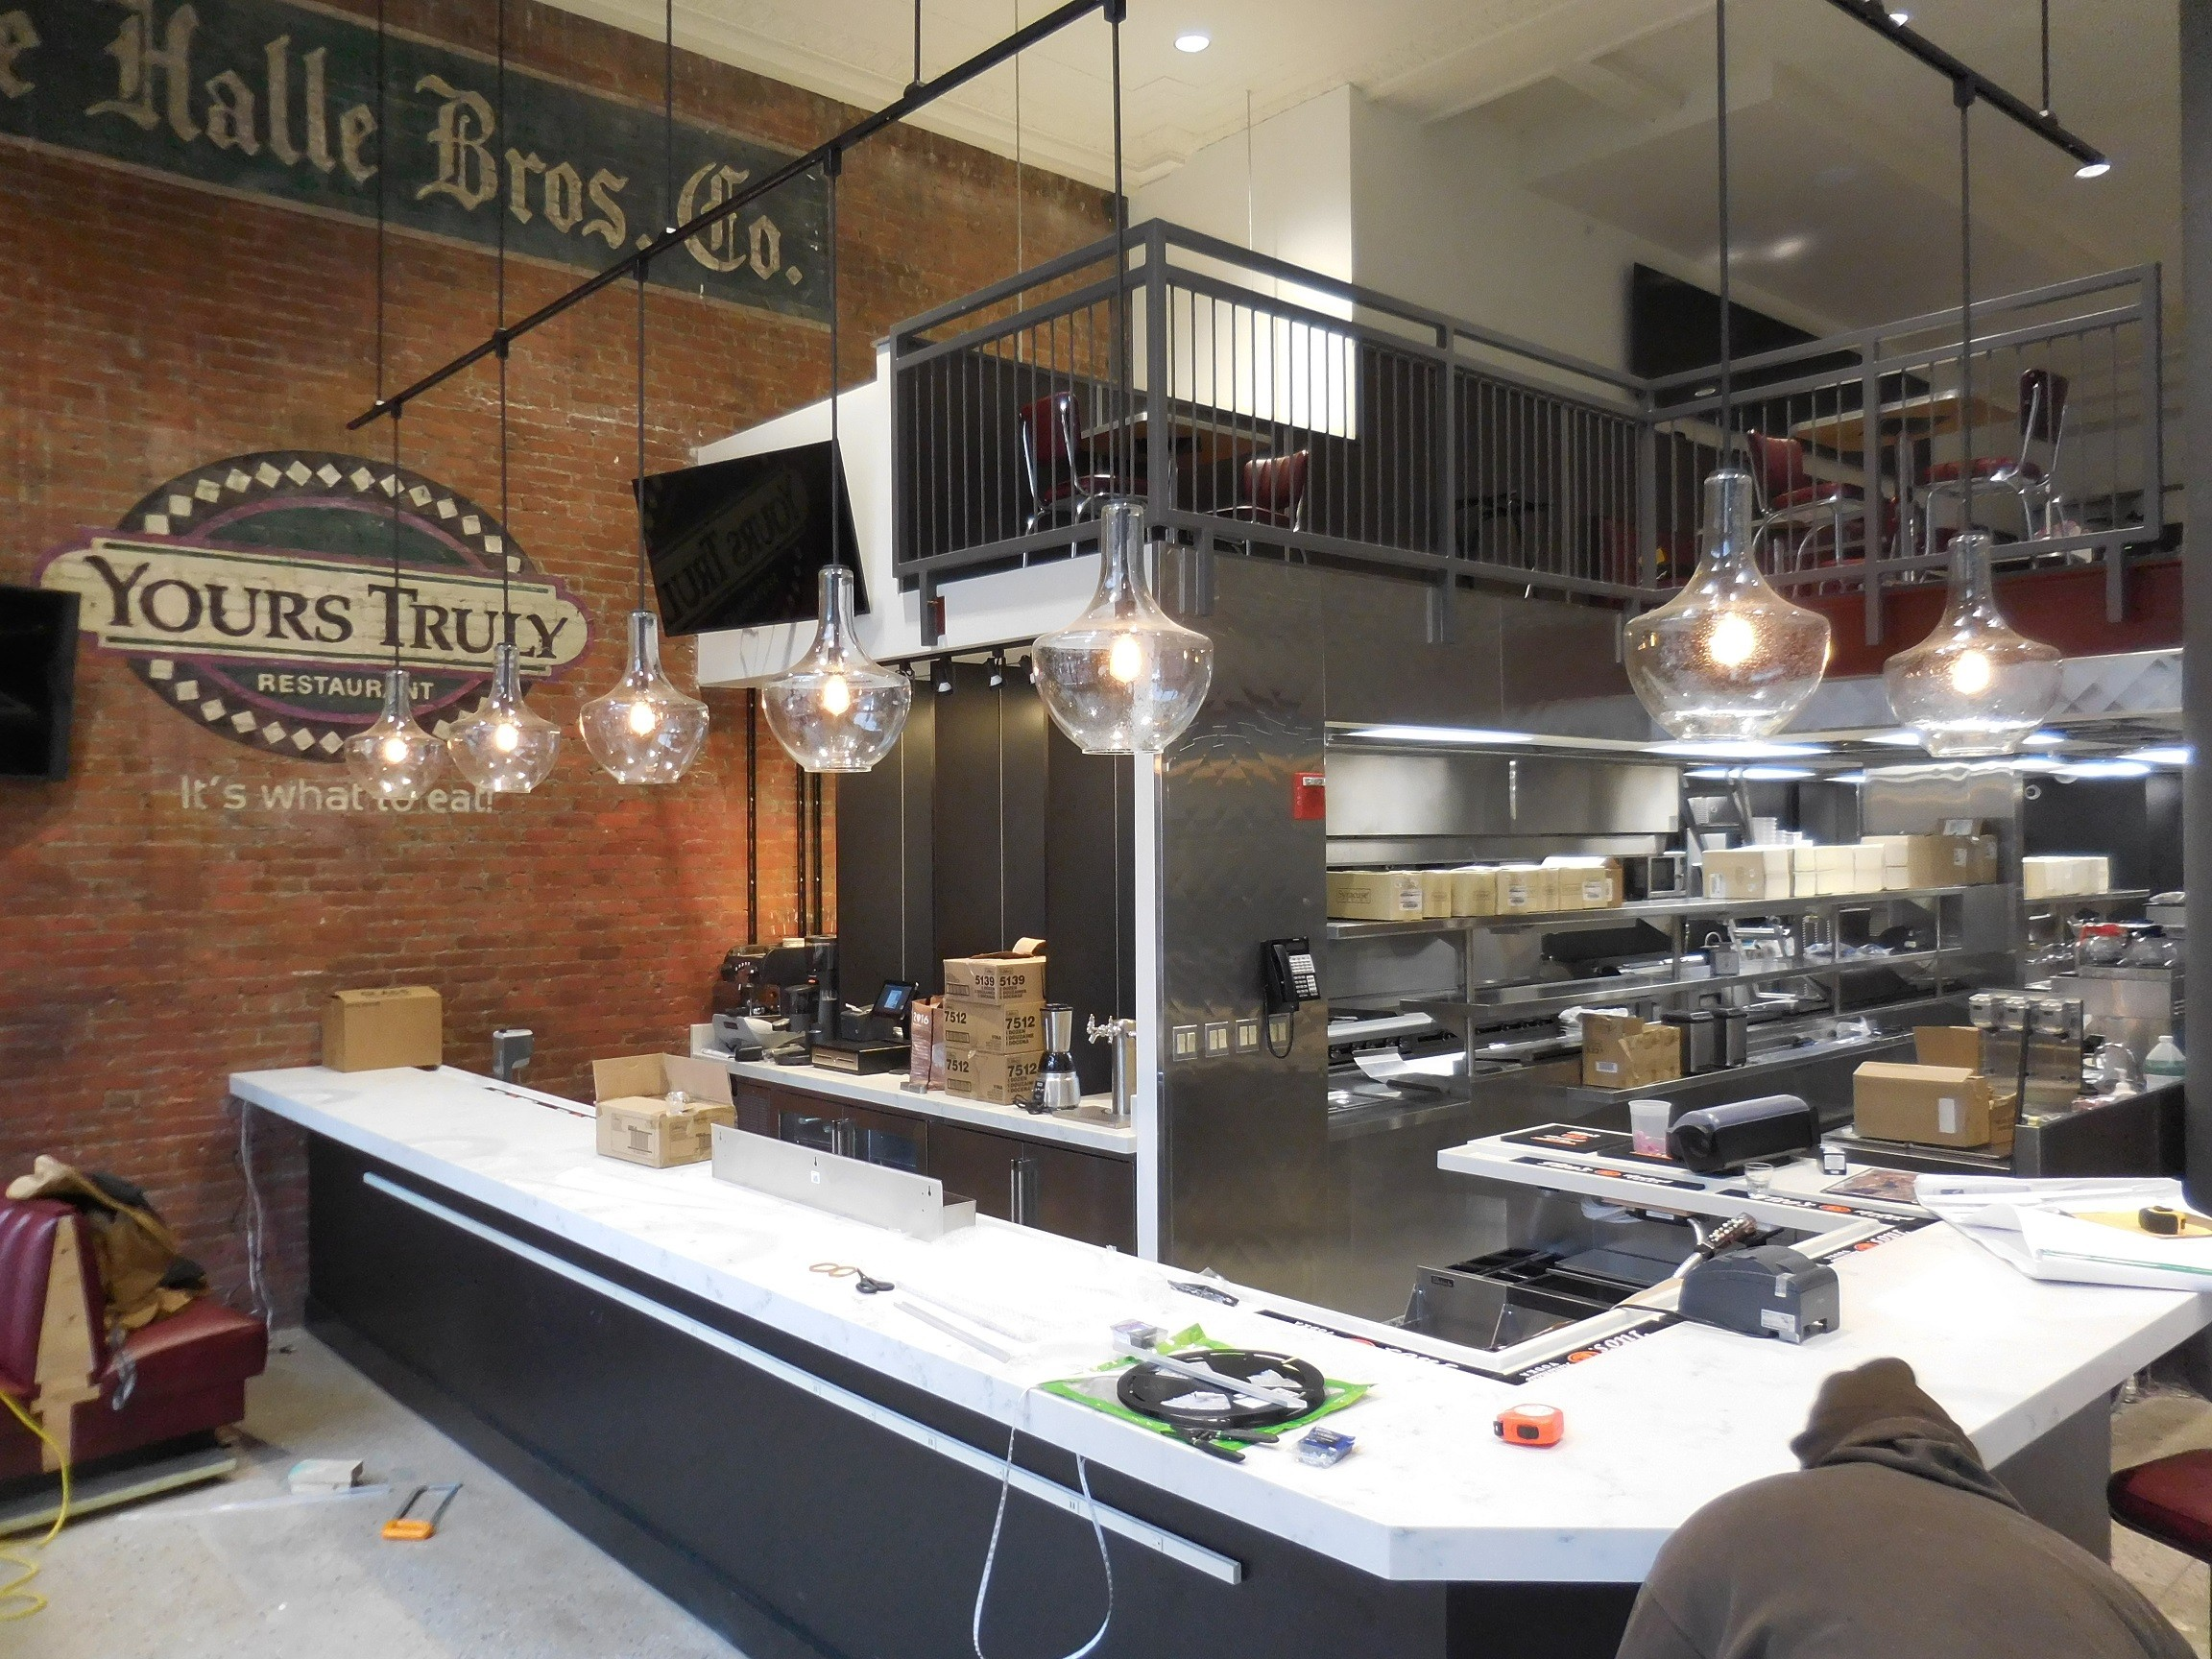 now open yours truly at the halle brothers co building scene and